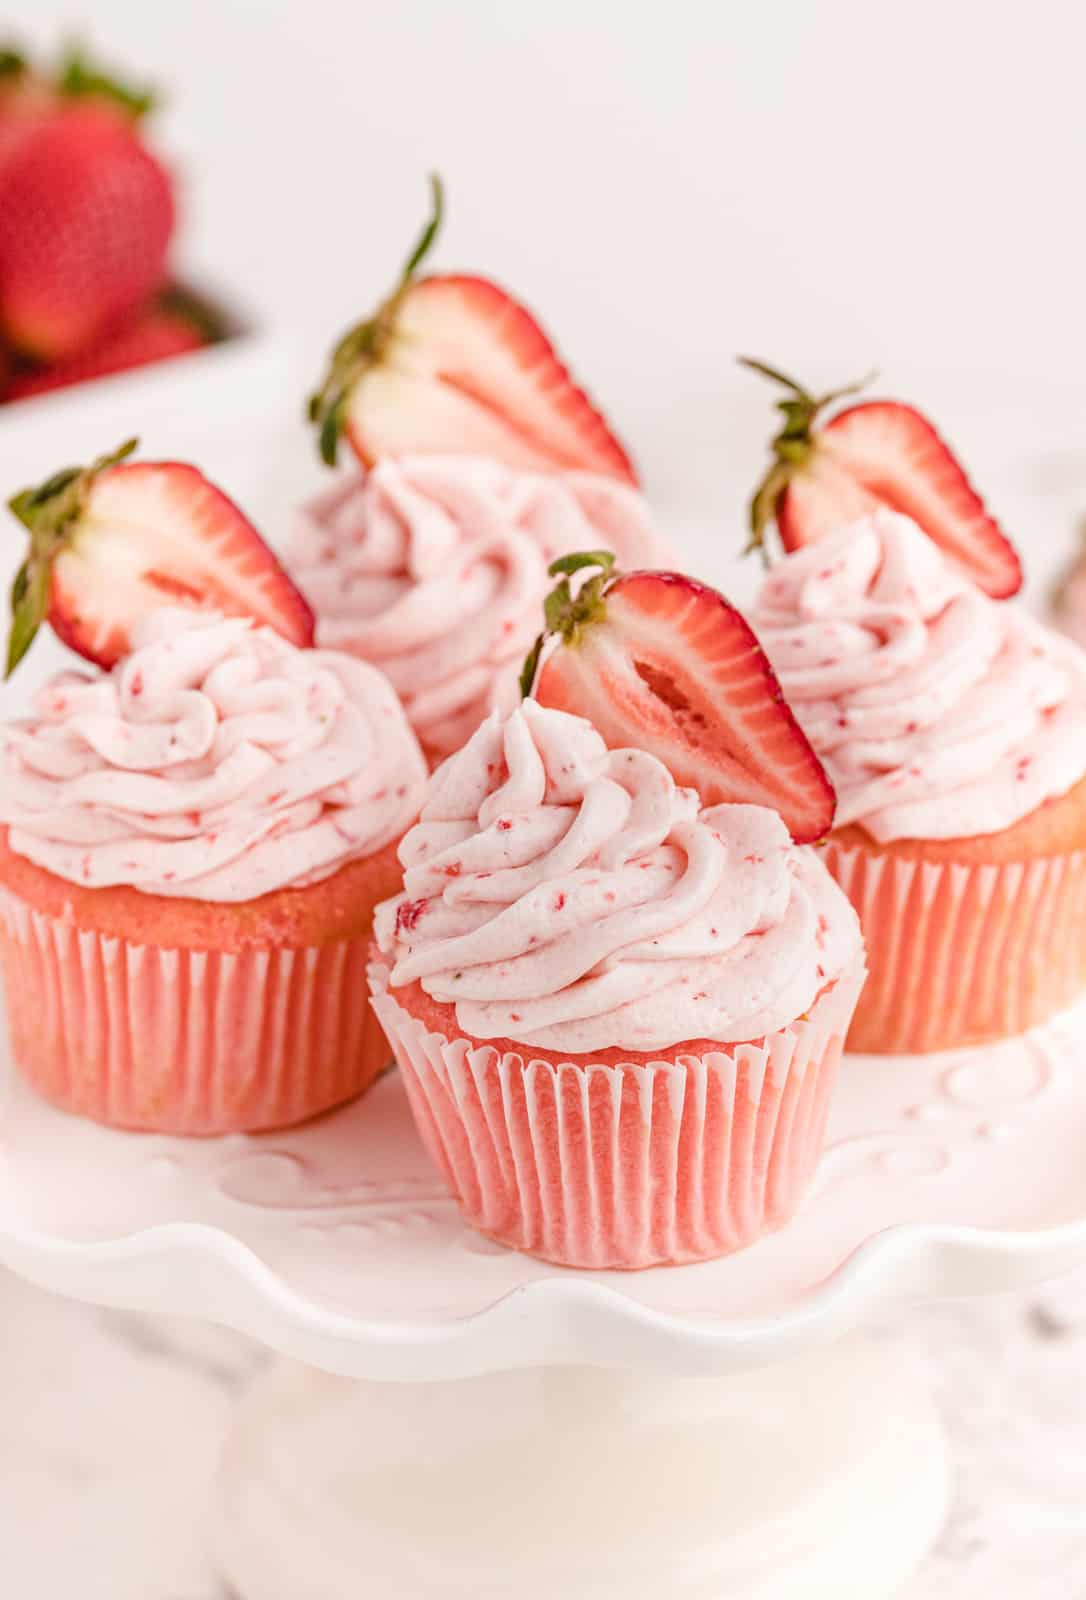 Four Strawberry Cupcakes on cake stand topped with strawberries